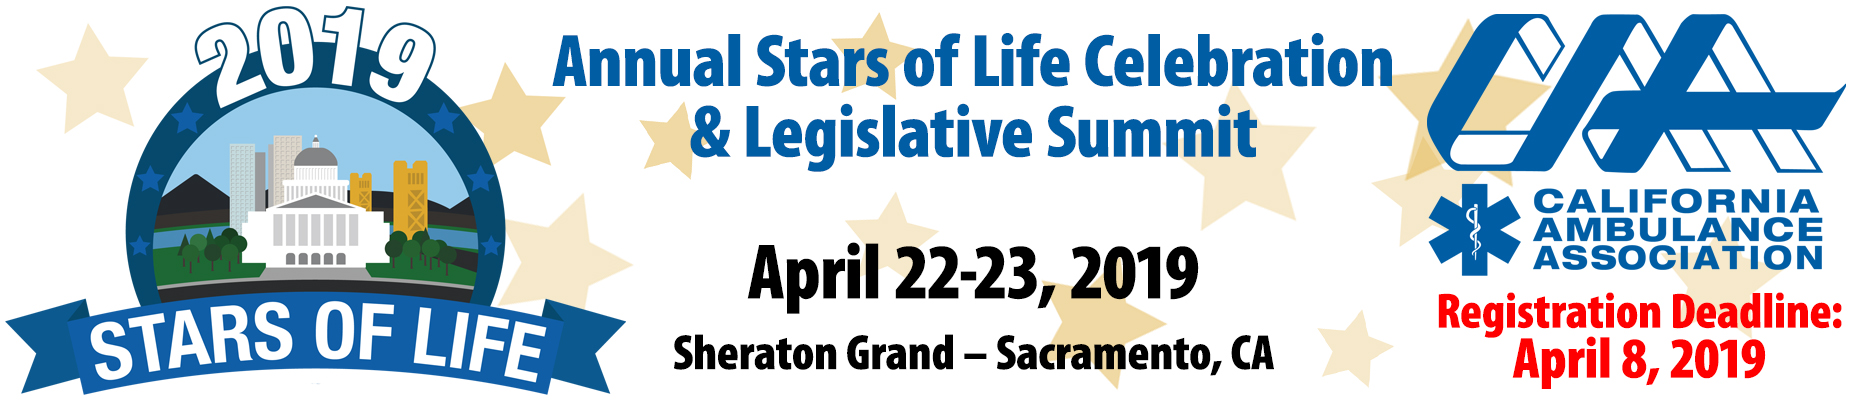 CAA 2019 Stars of Life & Legislative Summit